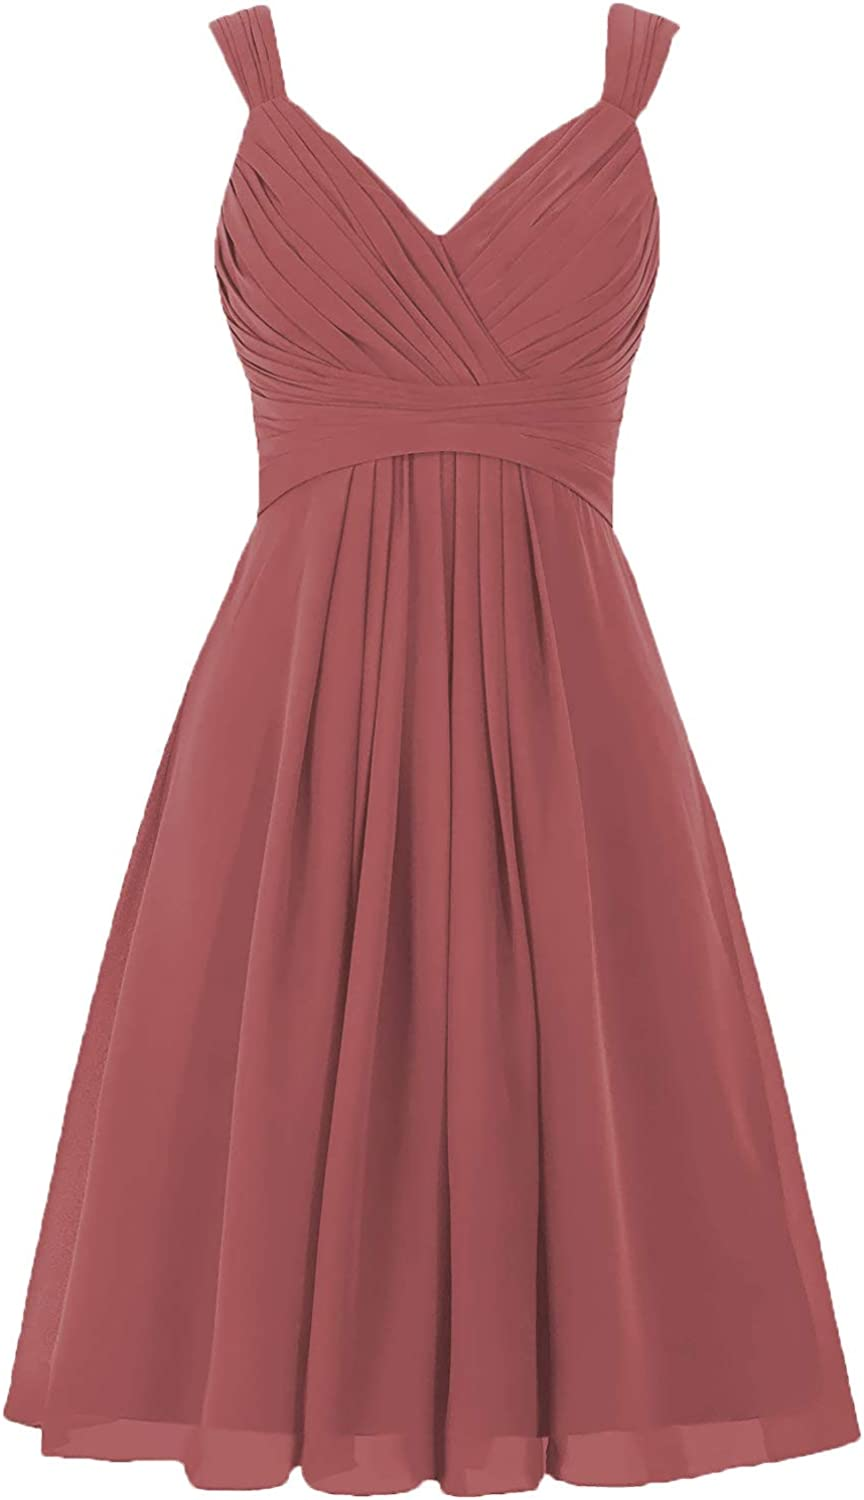 V-Neck Pleated Short Bridesmaid Dresses Empire Waist A-Line Open Back Party Dress for Women B002